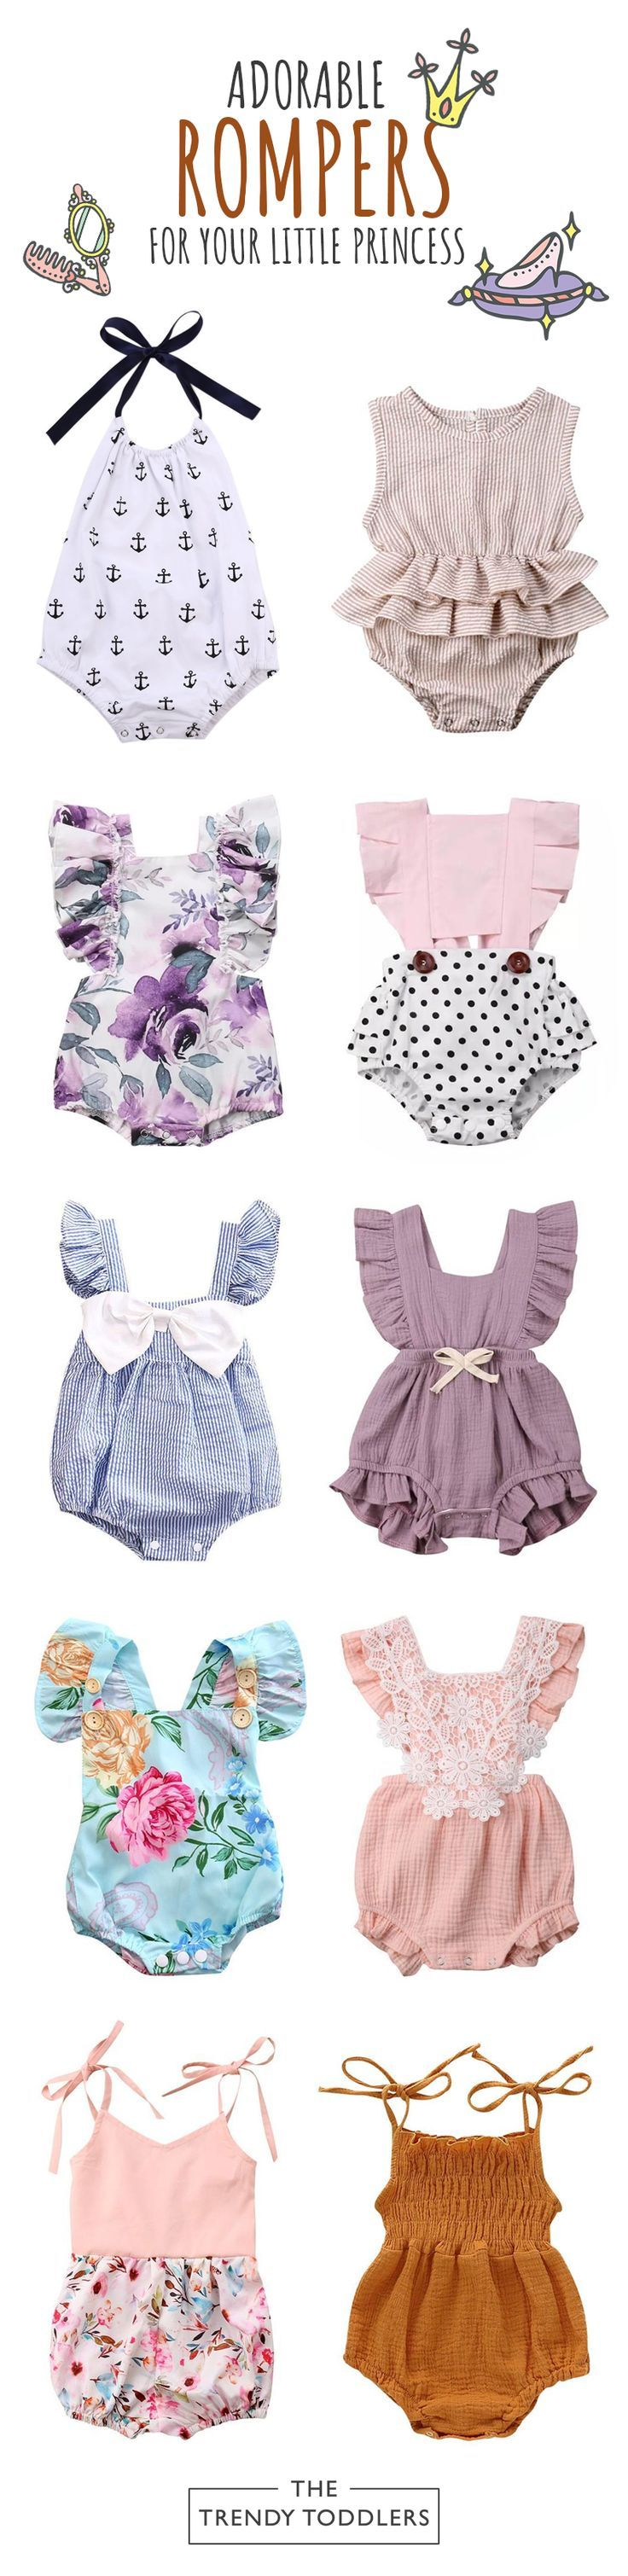 UP TO 70 OFF  FREE SHIPPING Shop our entire collection of baby girl rompers a UP TO 70 OFF  FREE SHIPPING Shop our entire collection of baby girl rompers a